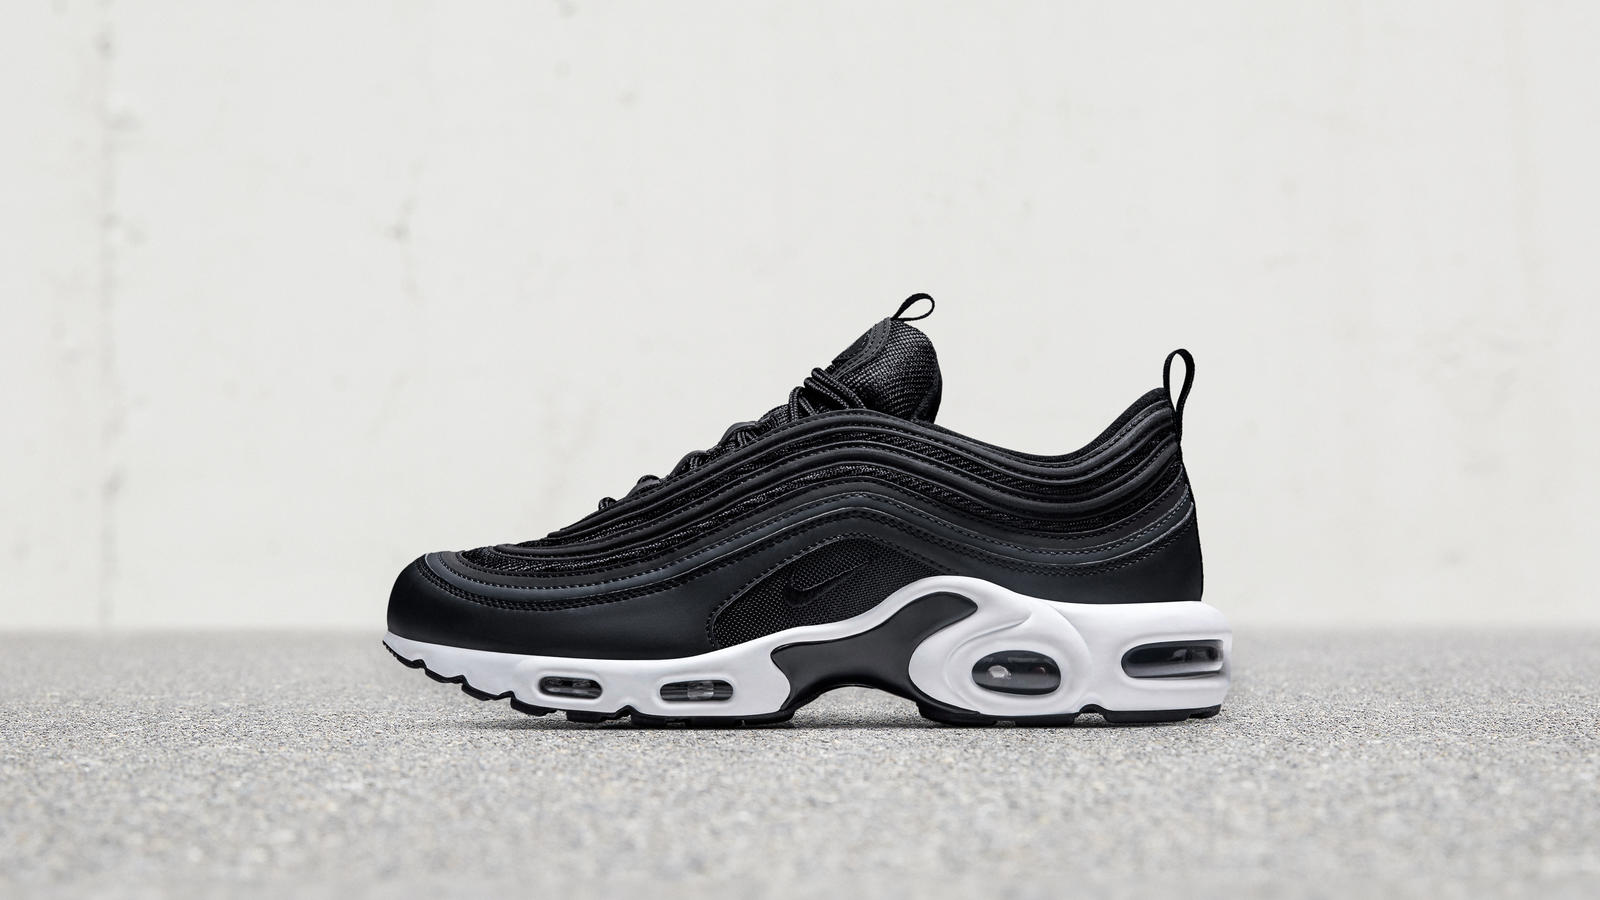 buy online 518f9 dd99c Nike Air Max Plus / 97 - Nike News